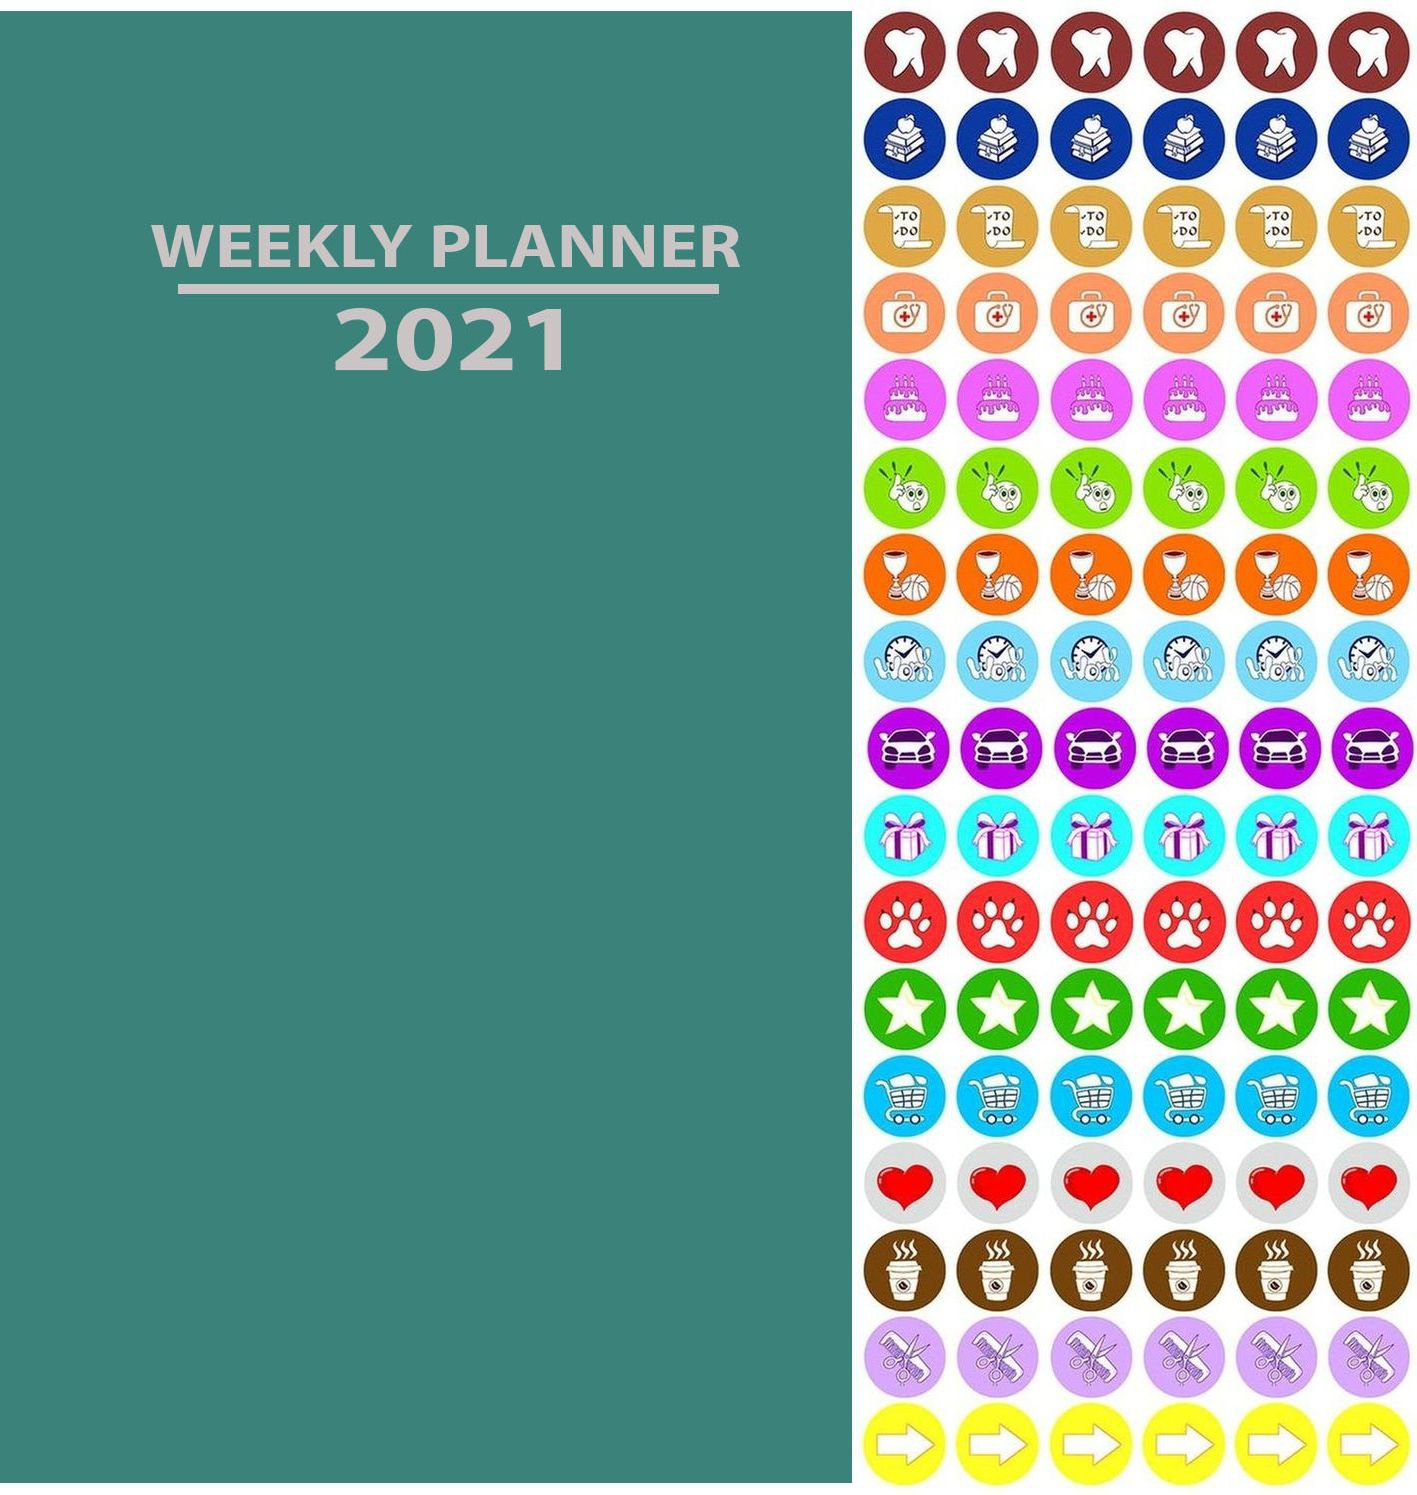 2020 Weekly Pocket Appointment Planner/Calendar/Organizer (Teal) - with 100 Reminder Stickers